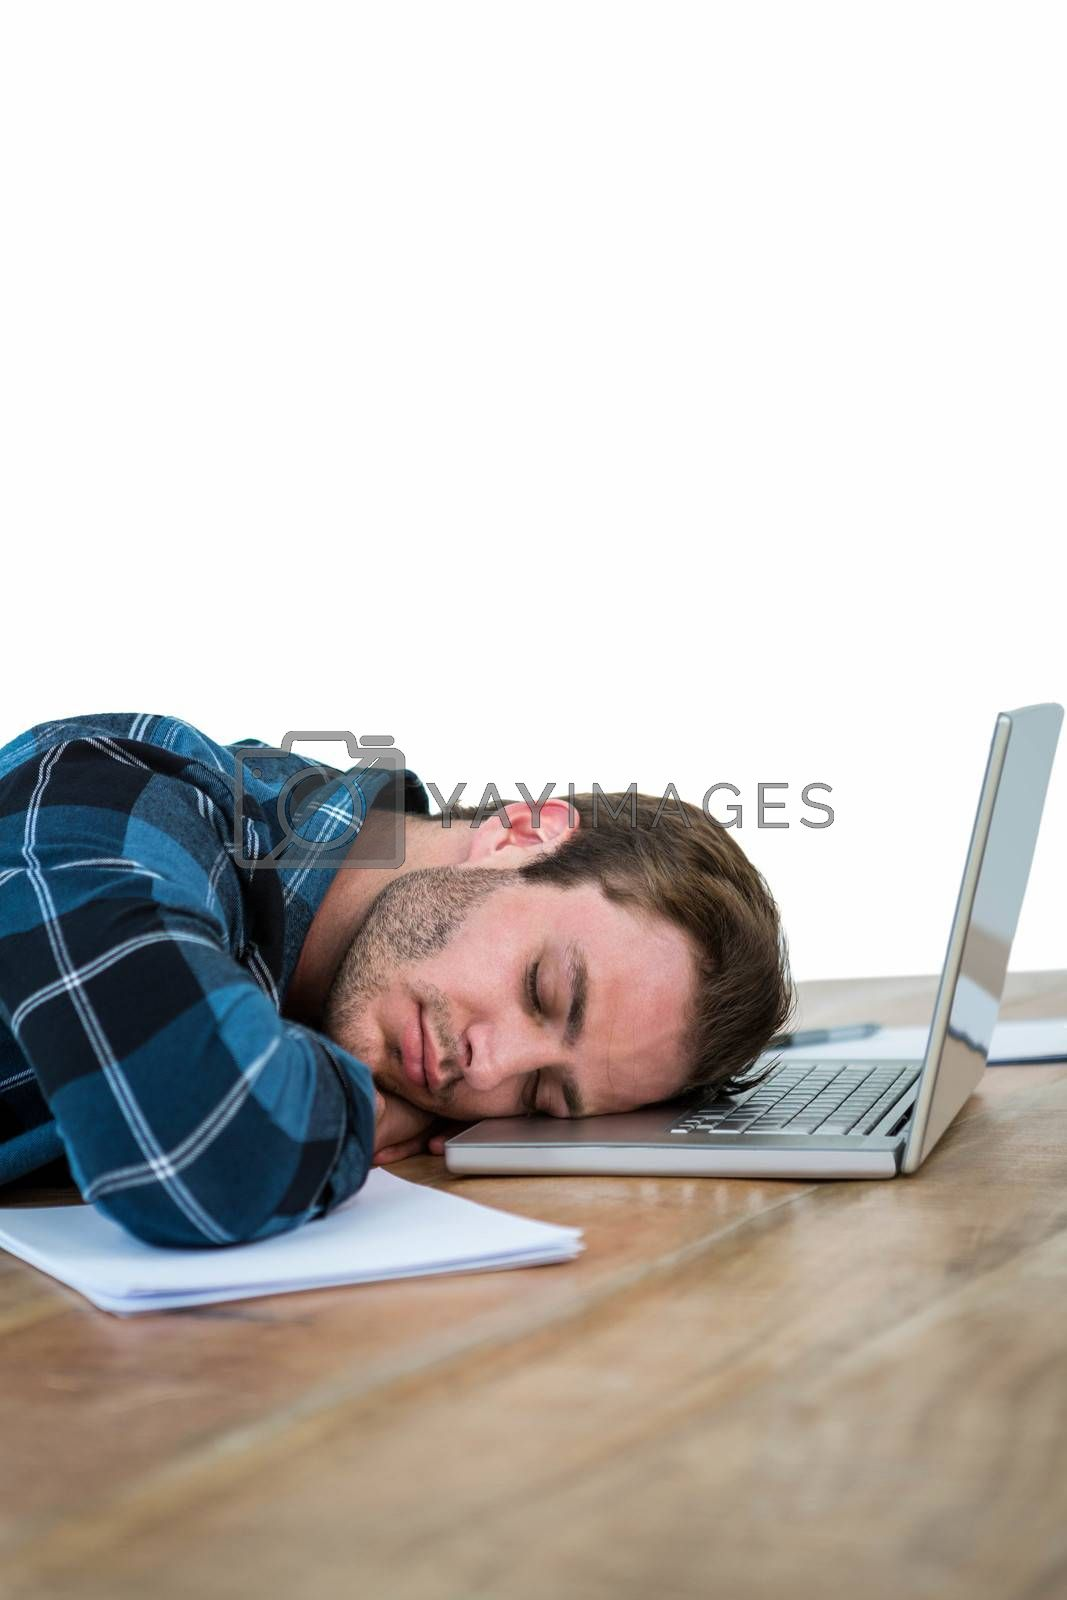 Handsome man sleeping on laptop in a bright office